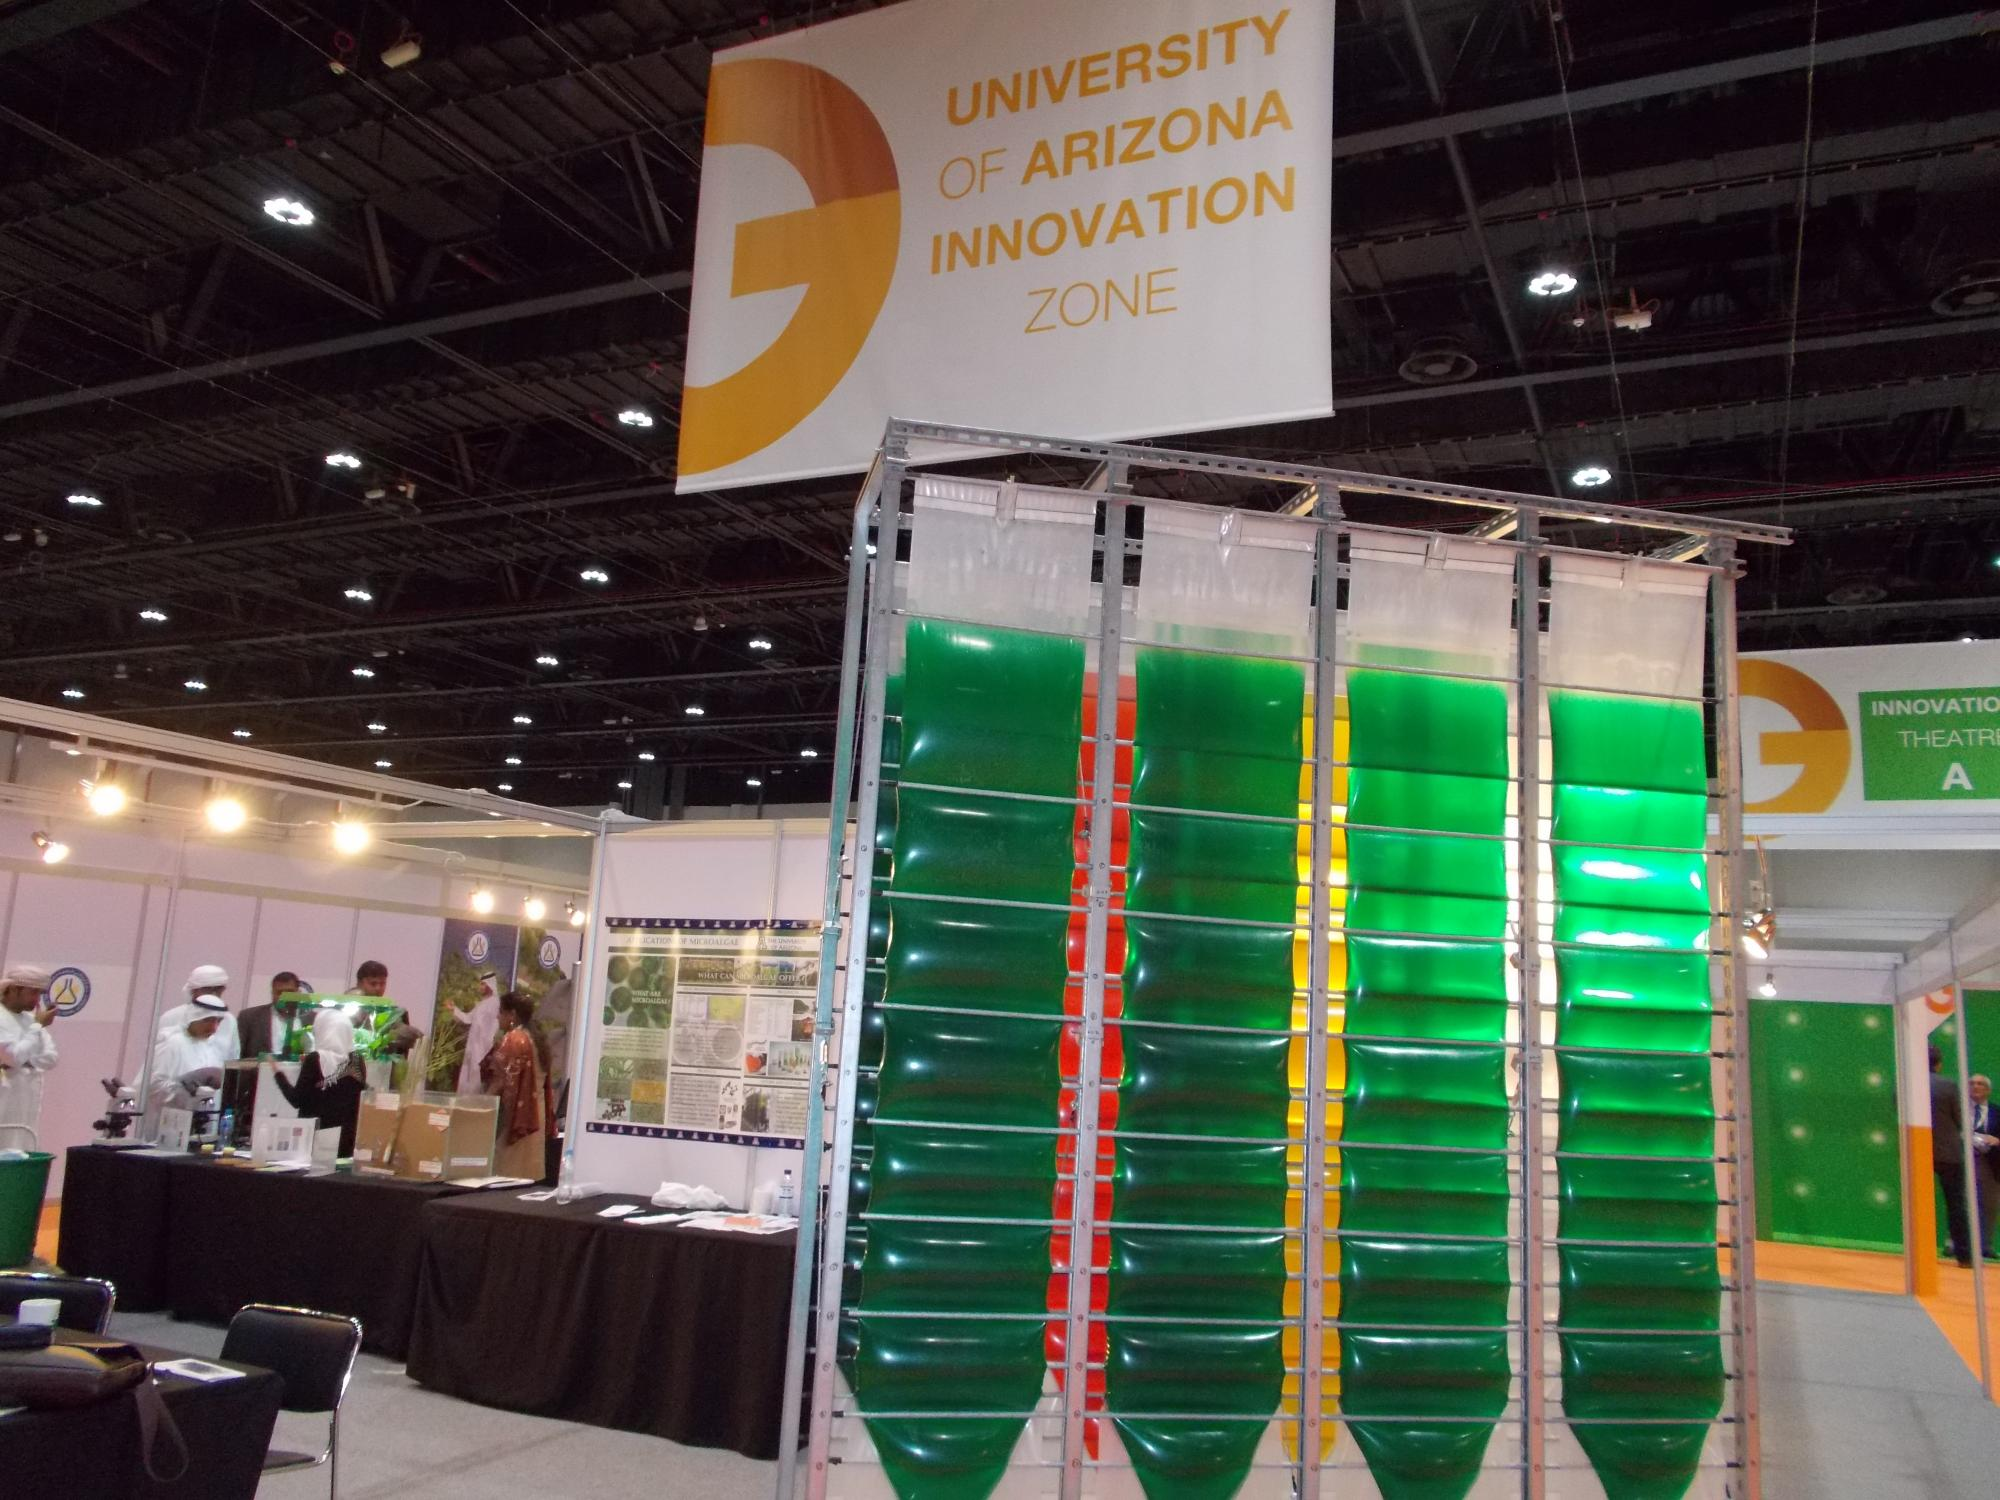 The University of Arizona Innovation Zone at the Global Forum for Innovations in Agriculture featured the Accordion photobioreactor, an innovative algae production system for nutraceuticals, animal feed, biofuels and other high-value products.